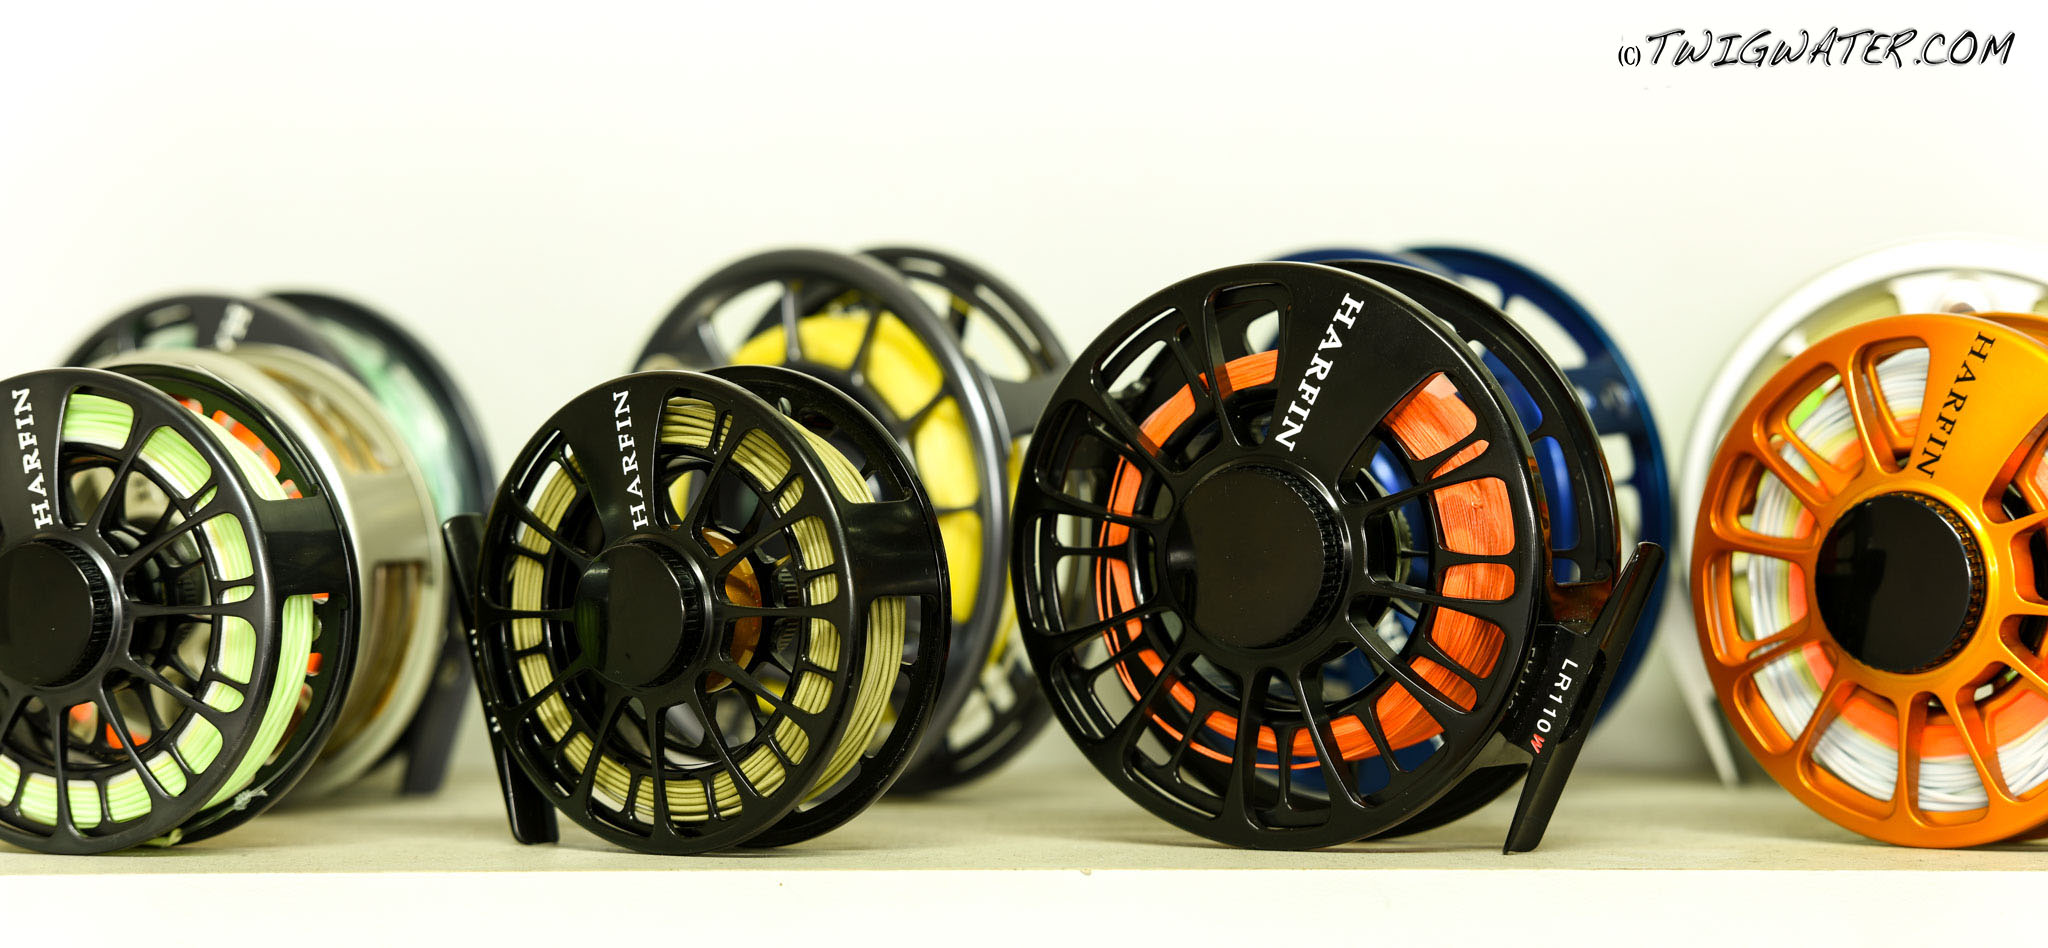 Harfin reels review on Twigwater